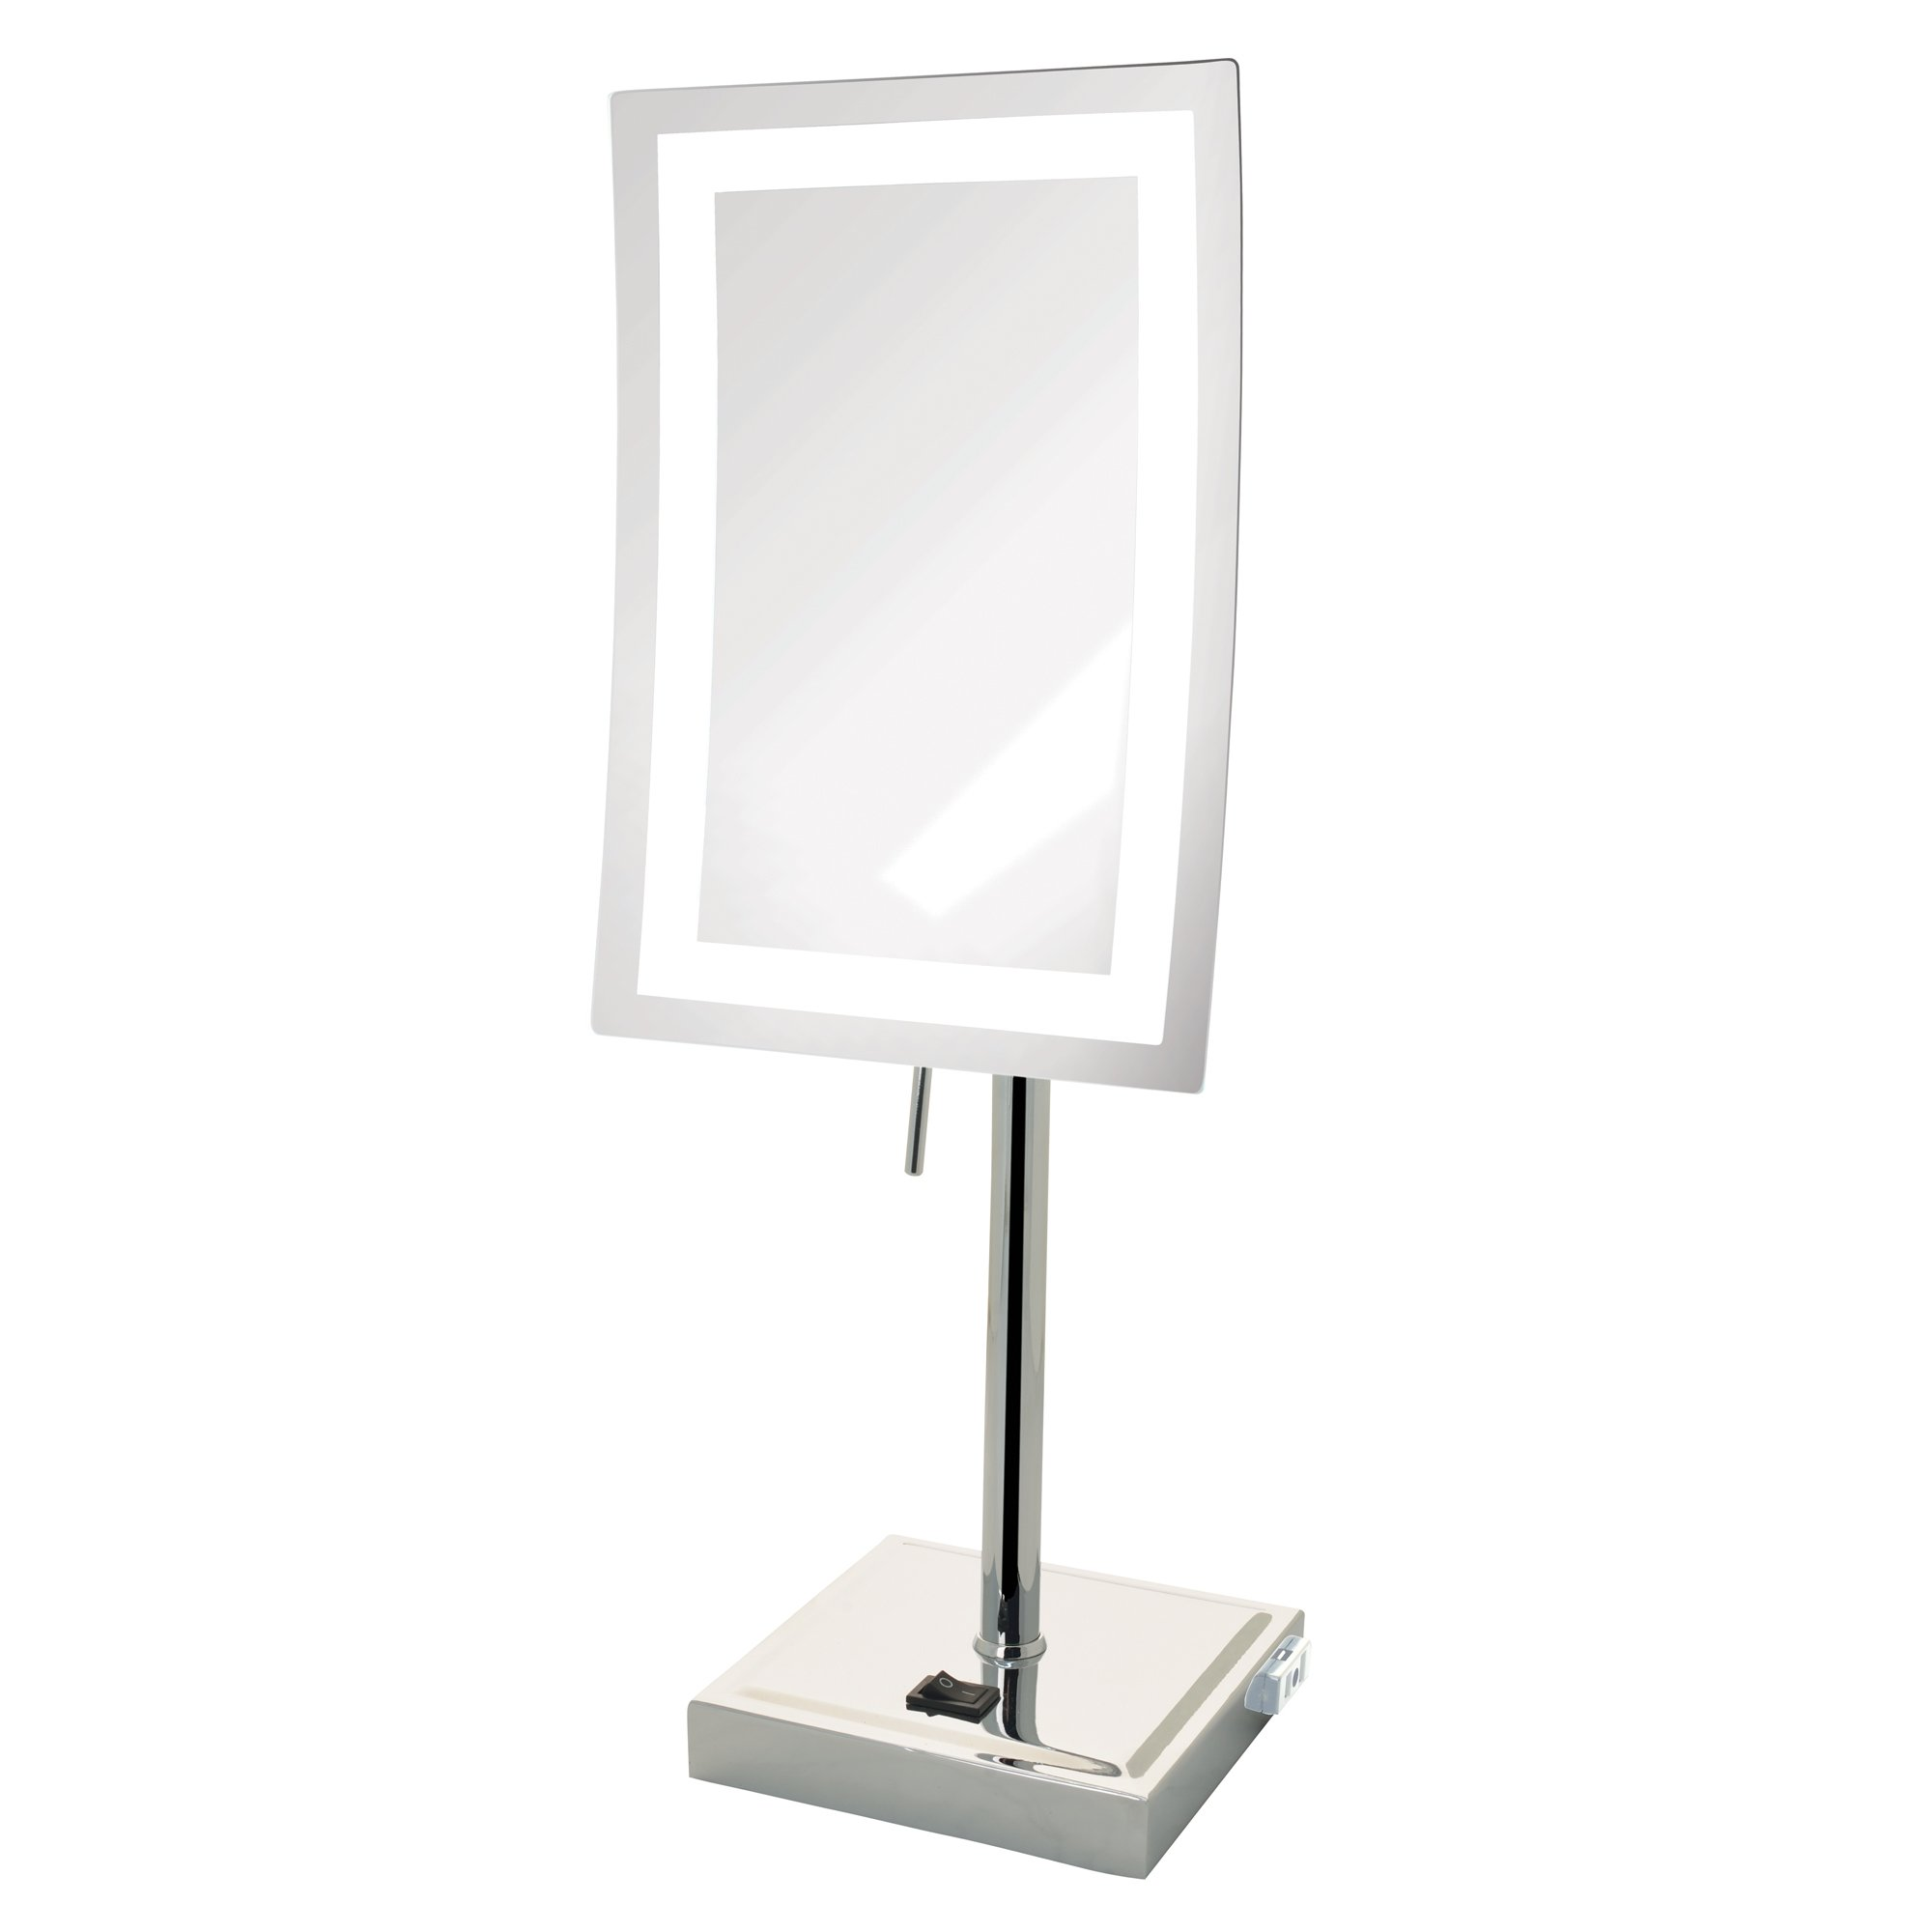 Jerdon JRT910CL 5X Magnified Lighted Tabletop Rectangular Mirror, Chrome Finish, 67.2 Ounce